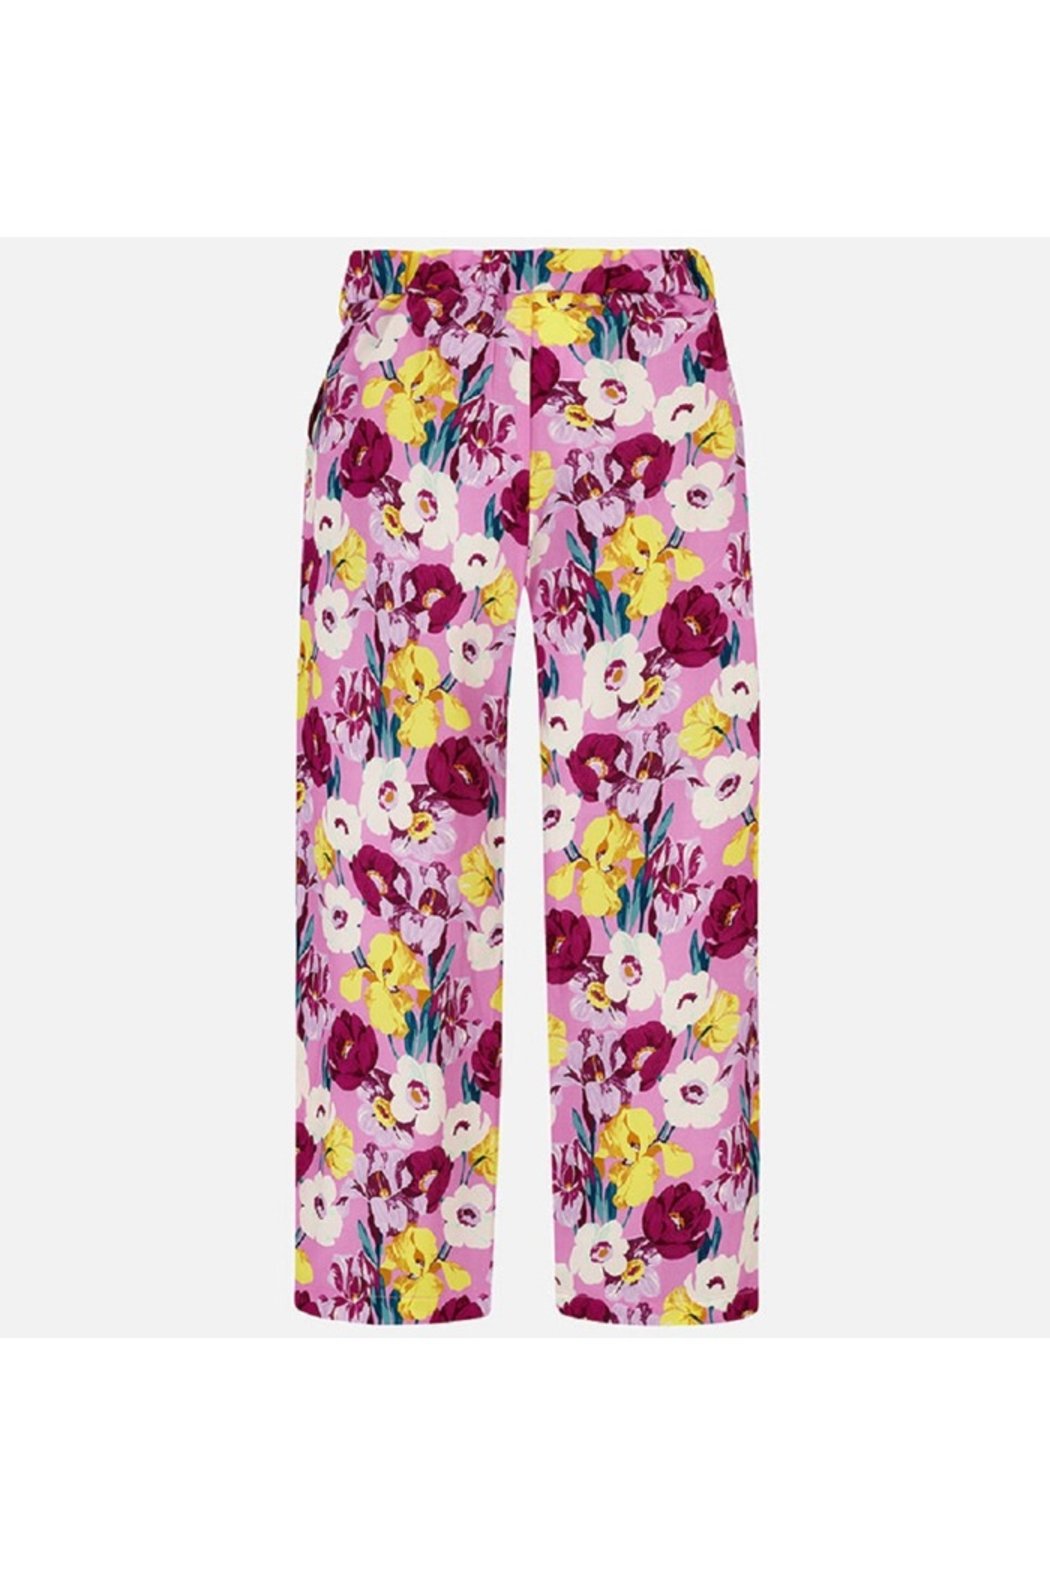 Mayoral FLORAL FLOWY PANT - Side Cropped Image